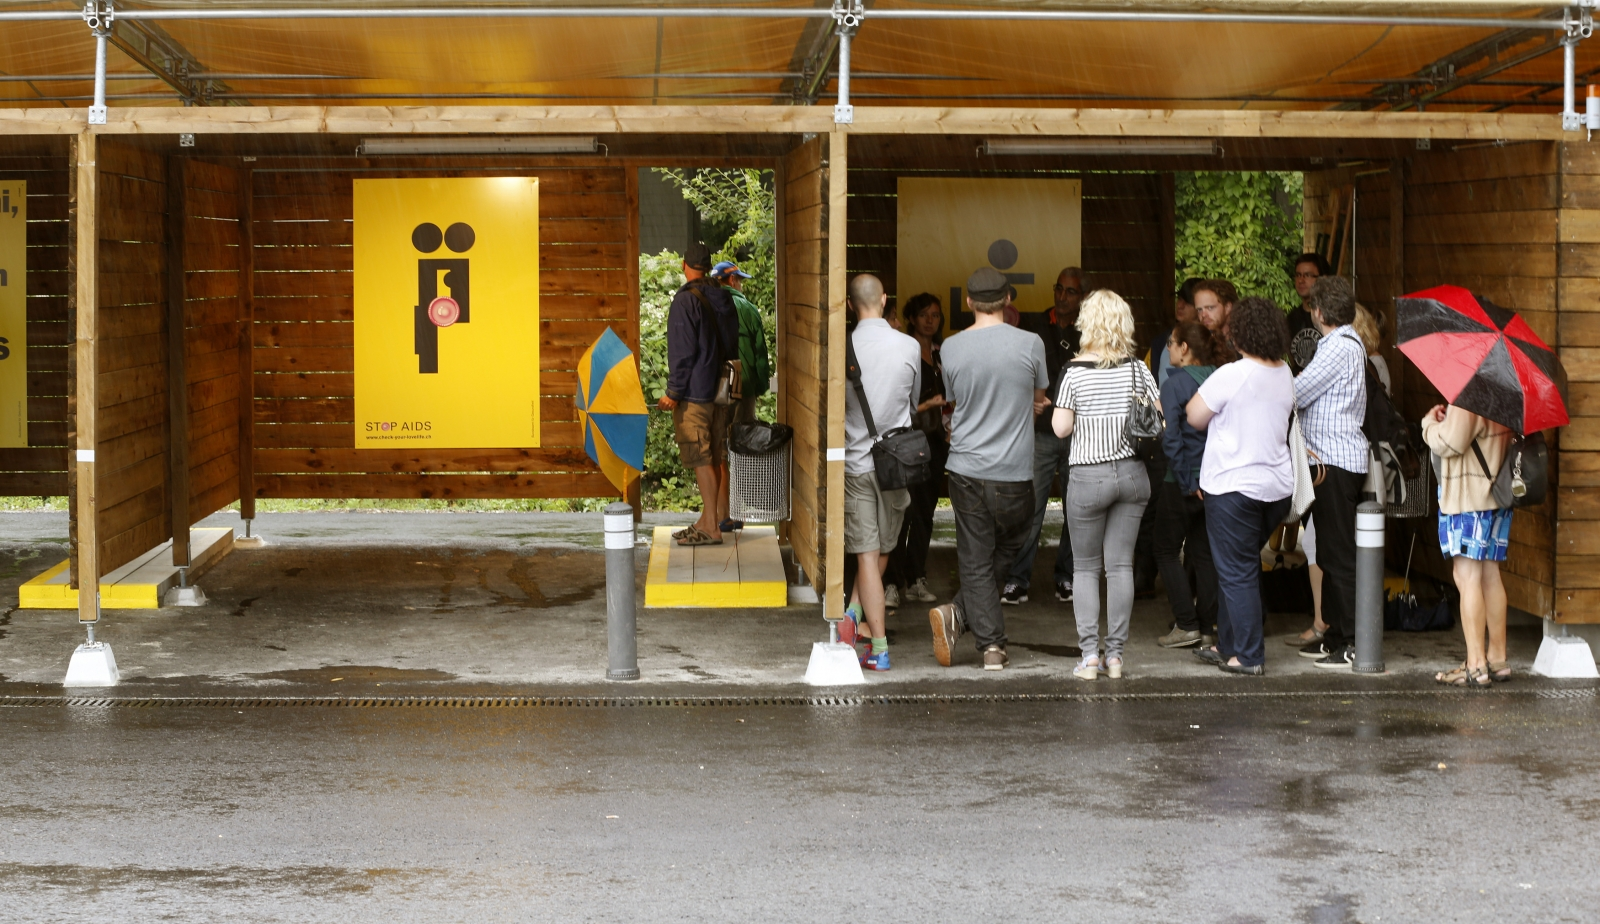 Switzerland Sex Drive Ins For Prostitutes Open For